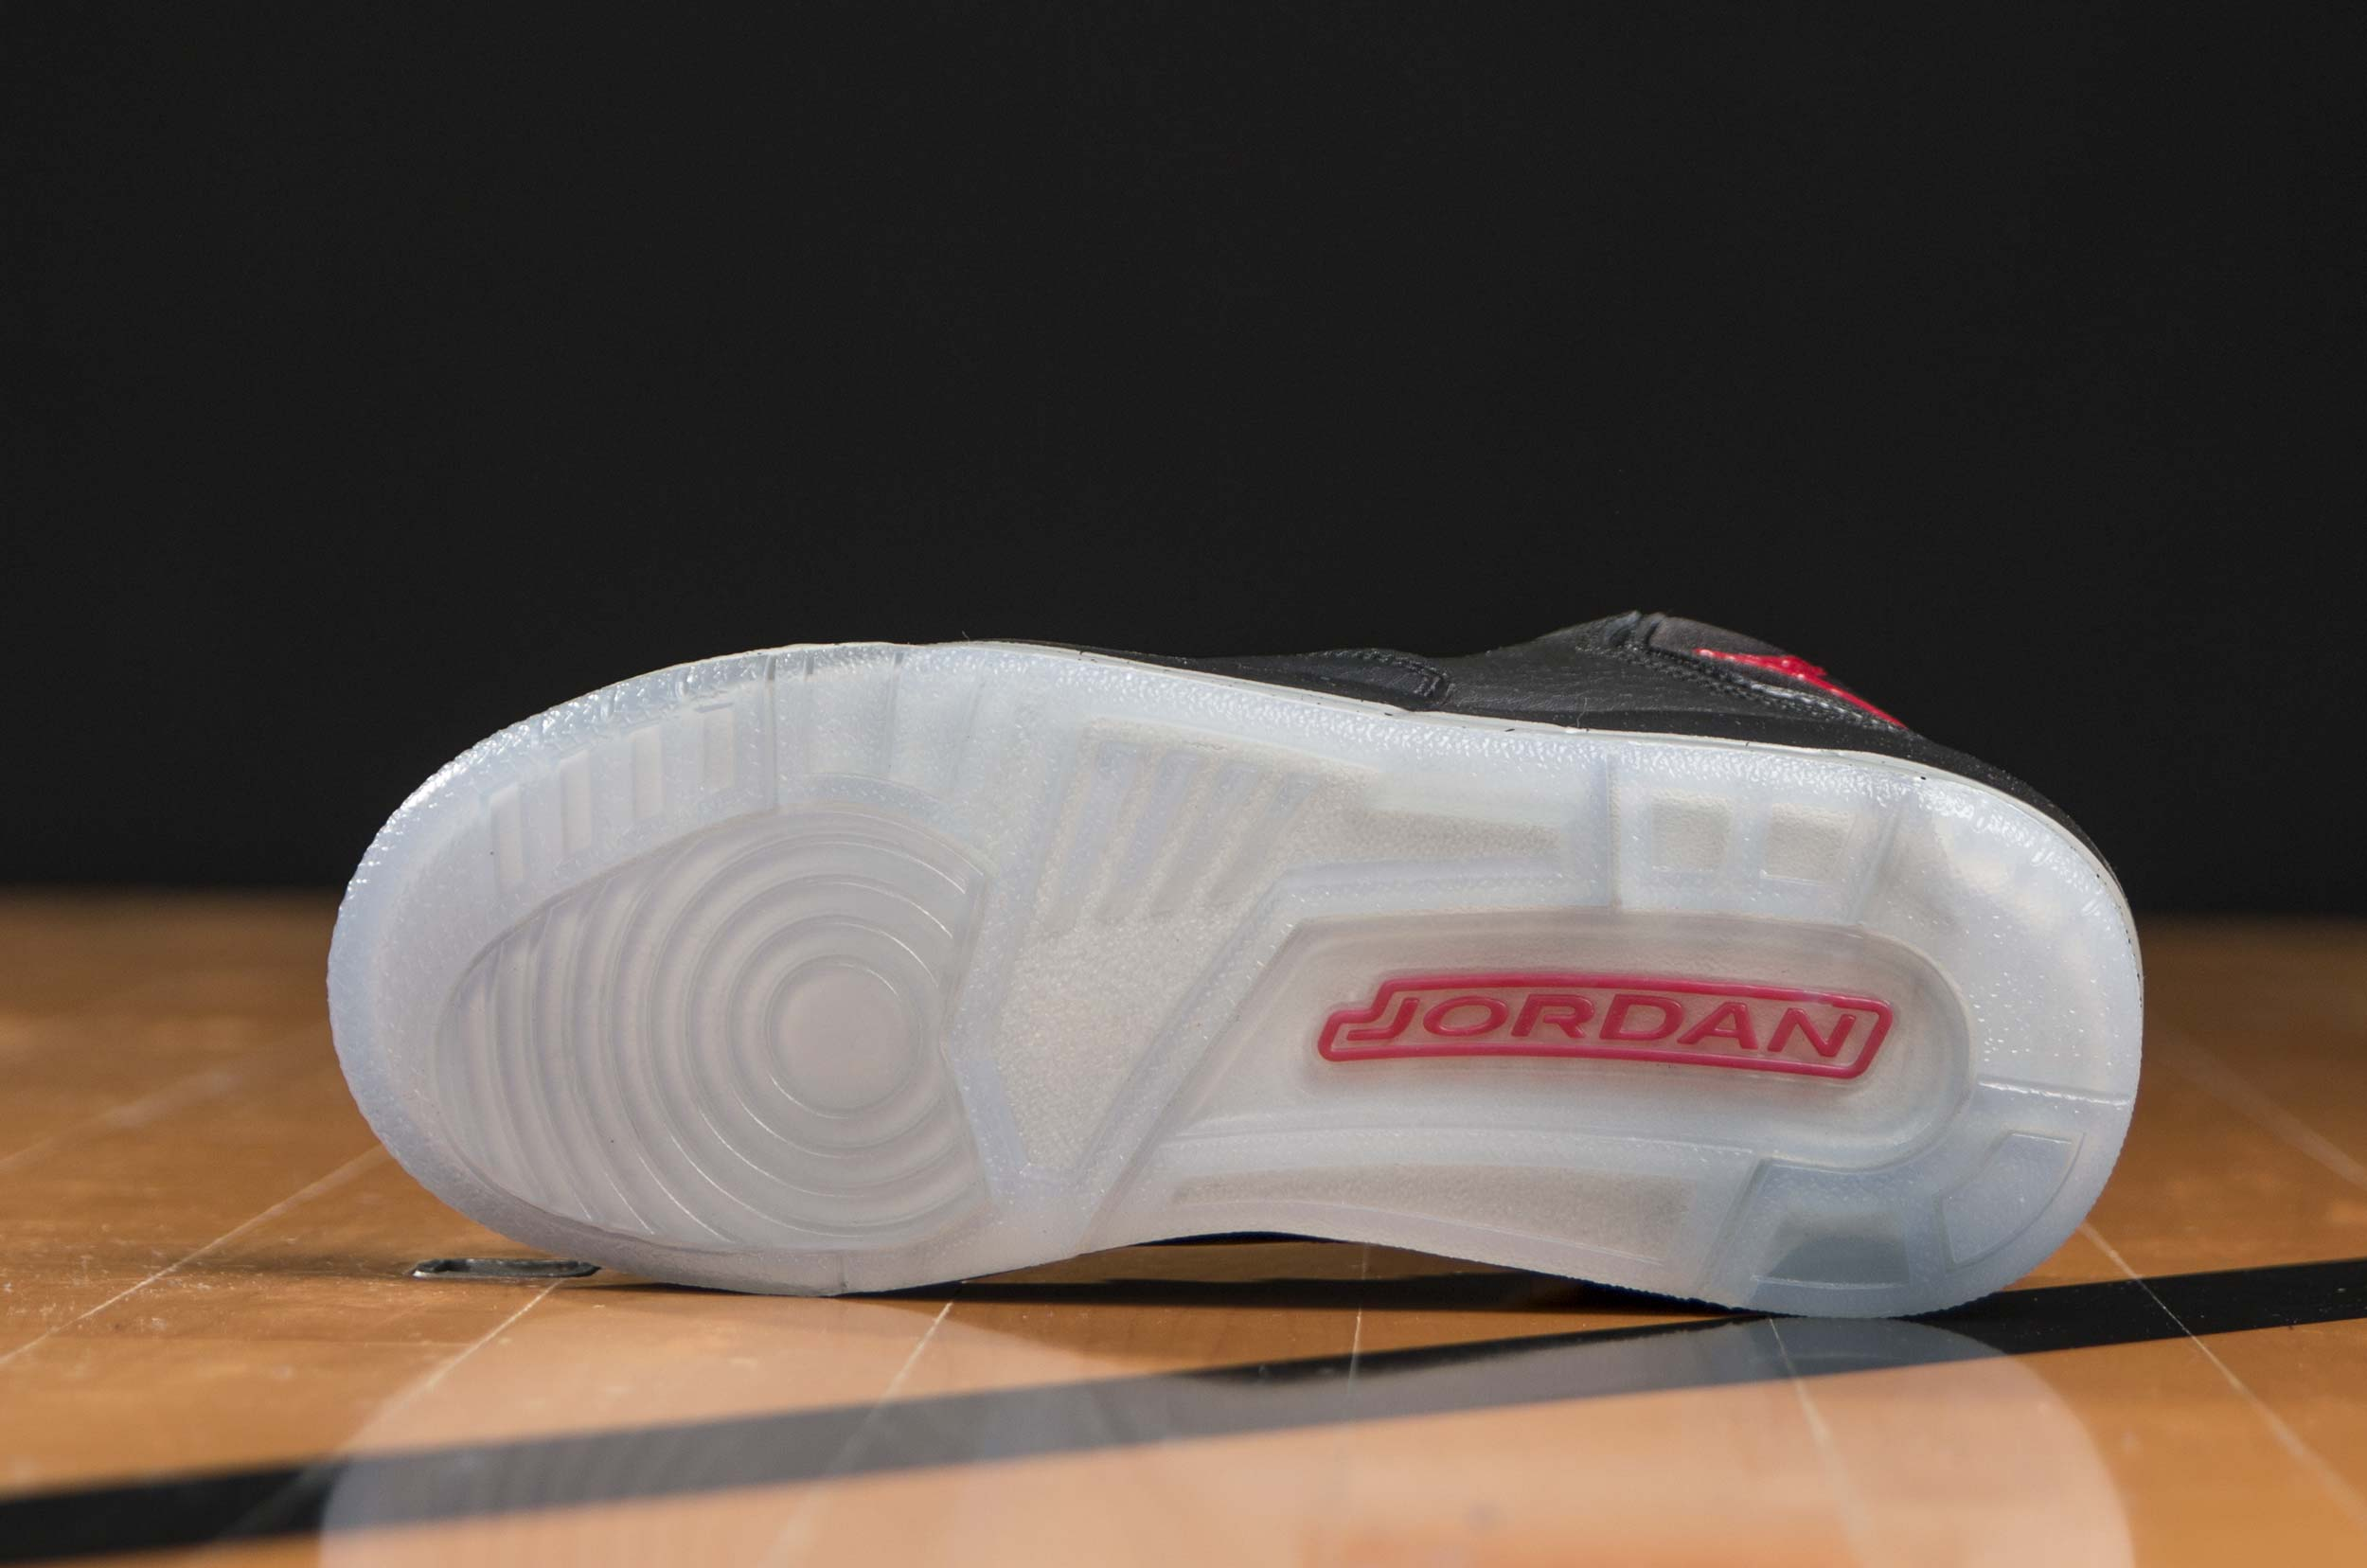 JORDAN COURTSIDE 23 AR1002-023 Μαύρο